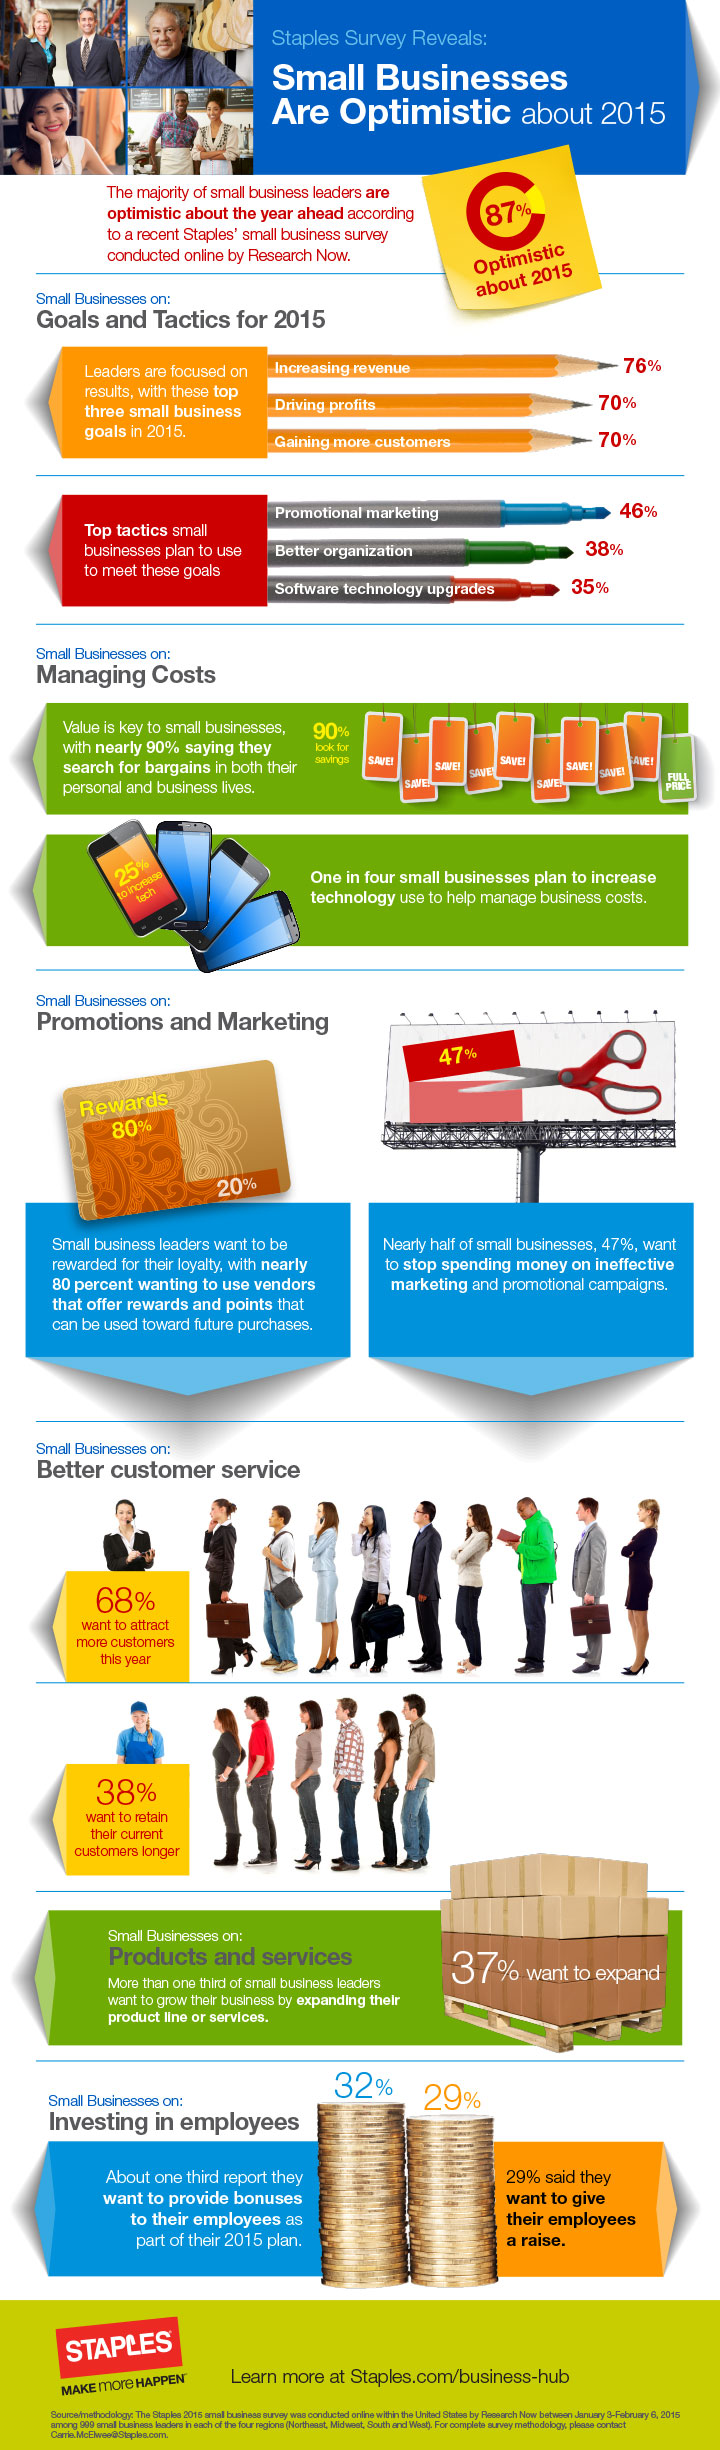 Staples Small Business Infographic